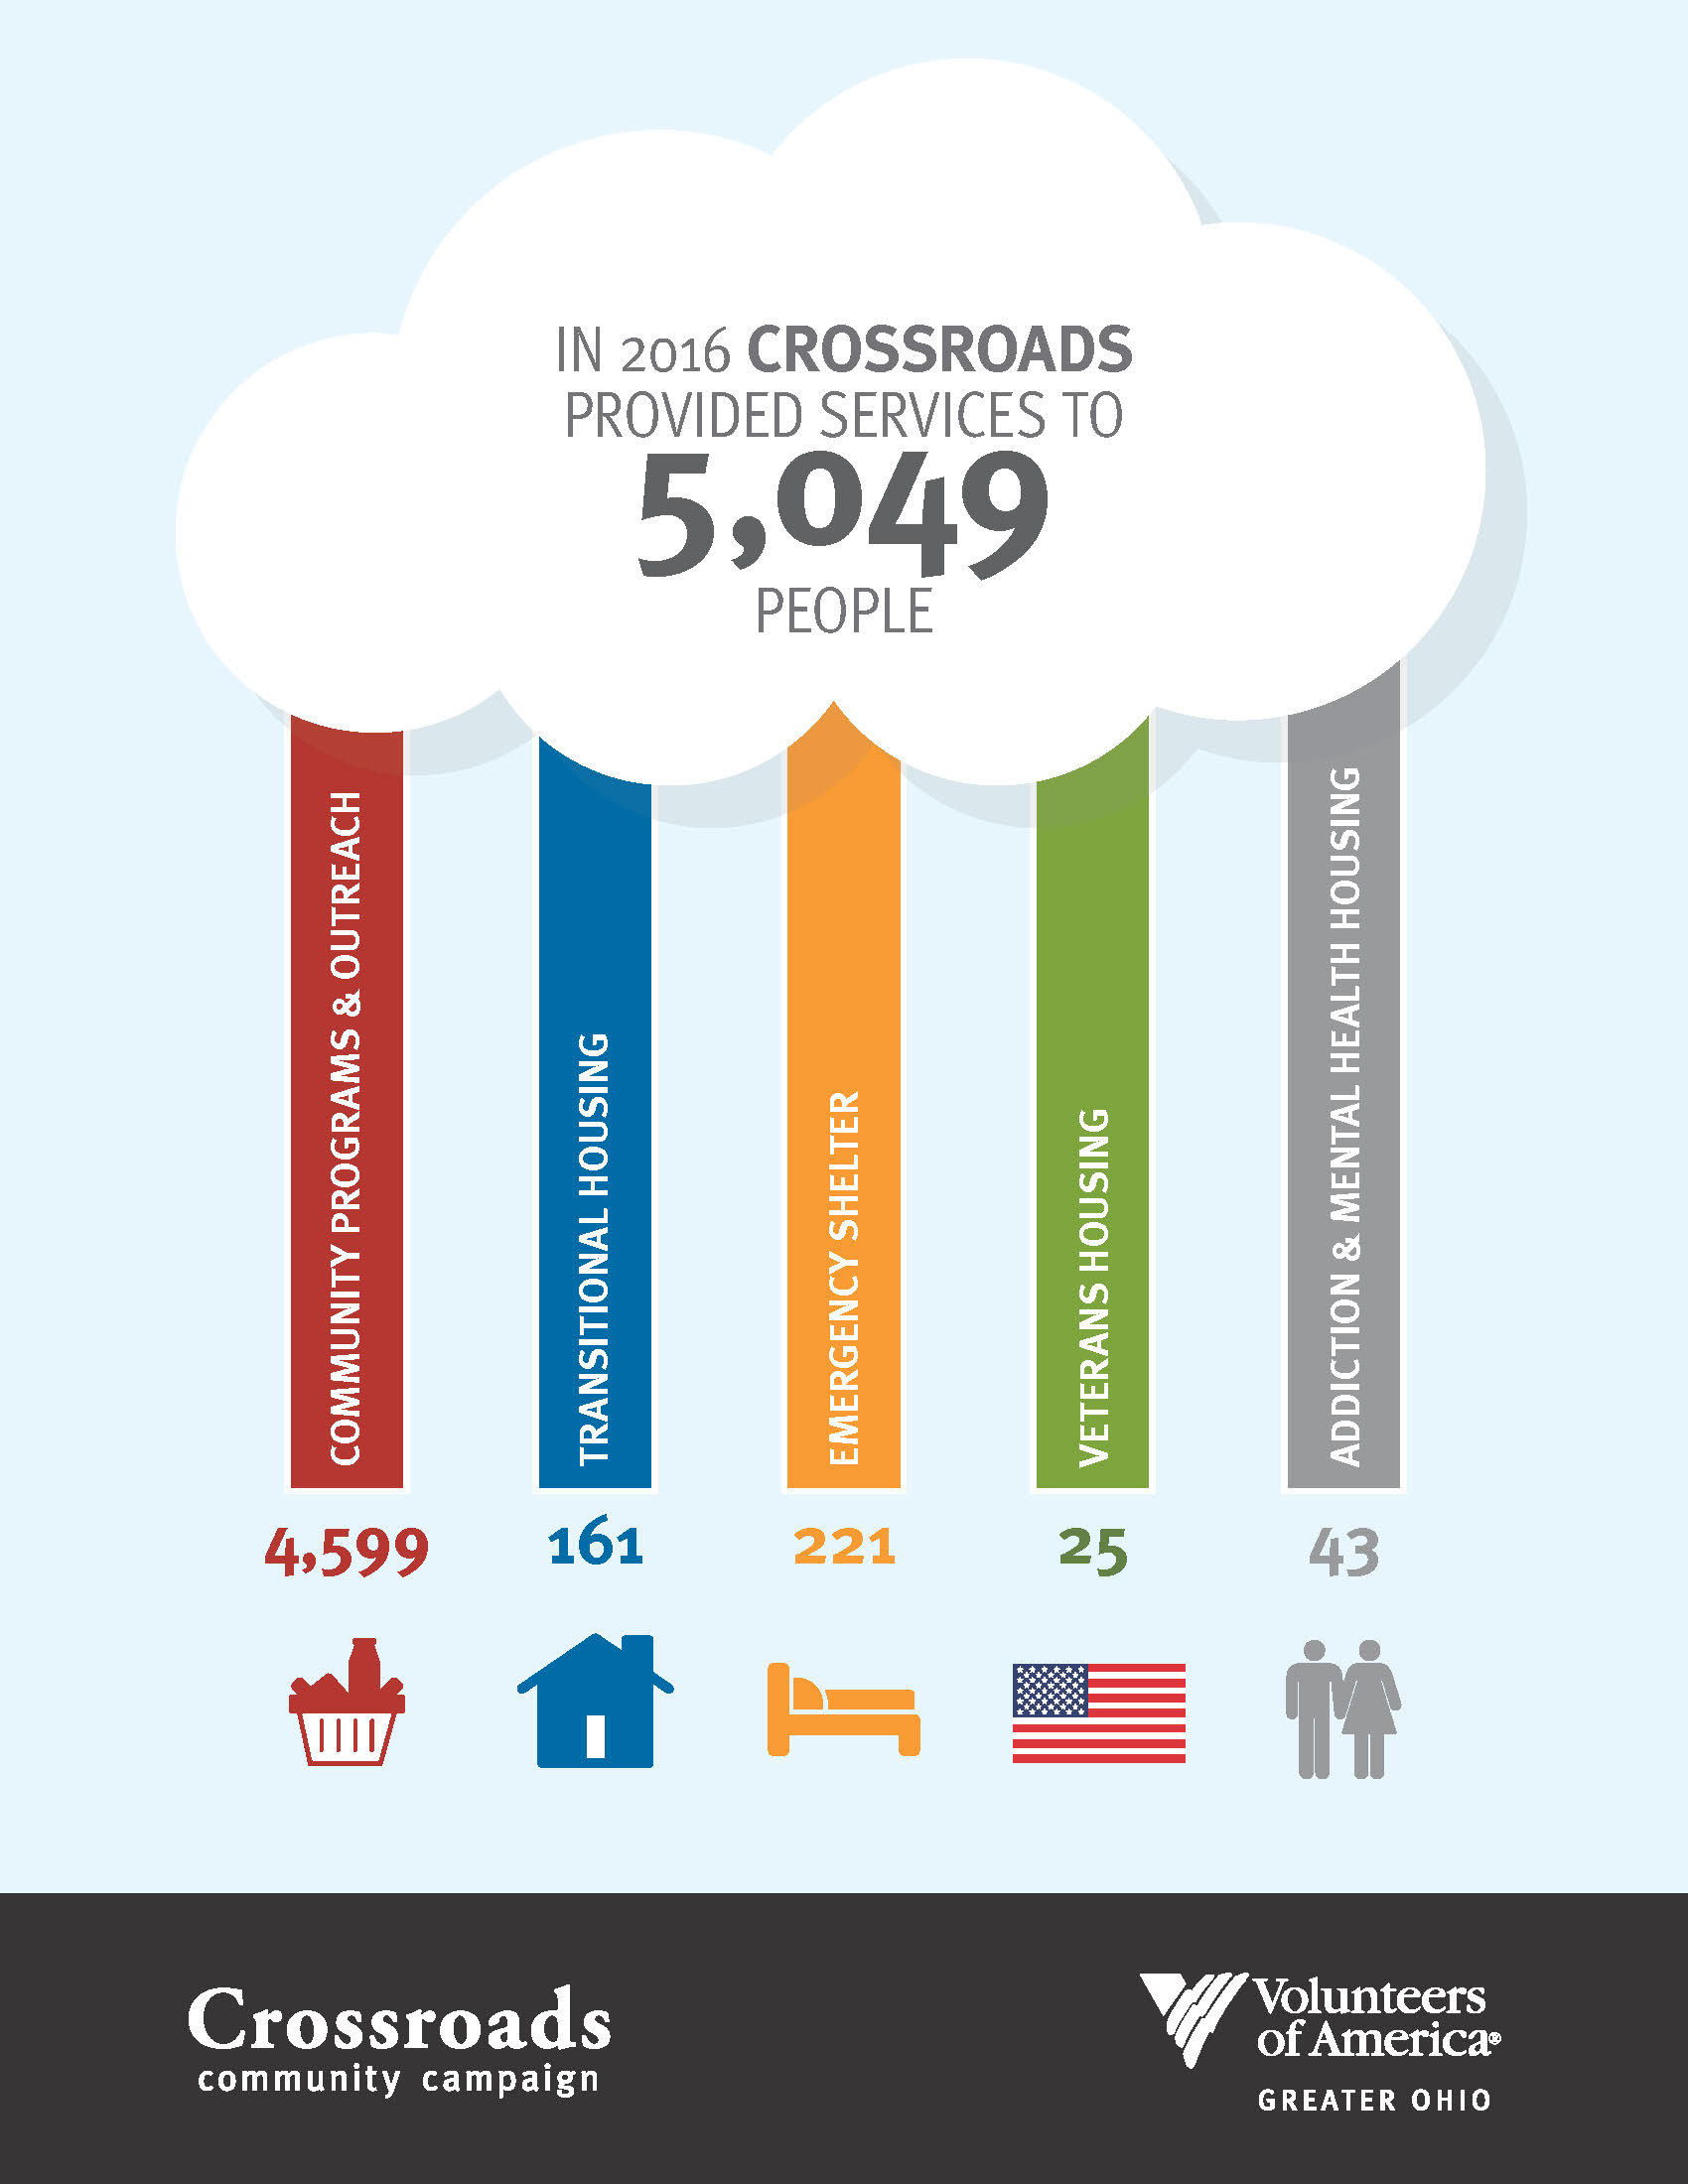 Crossroads serves 5,049 people